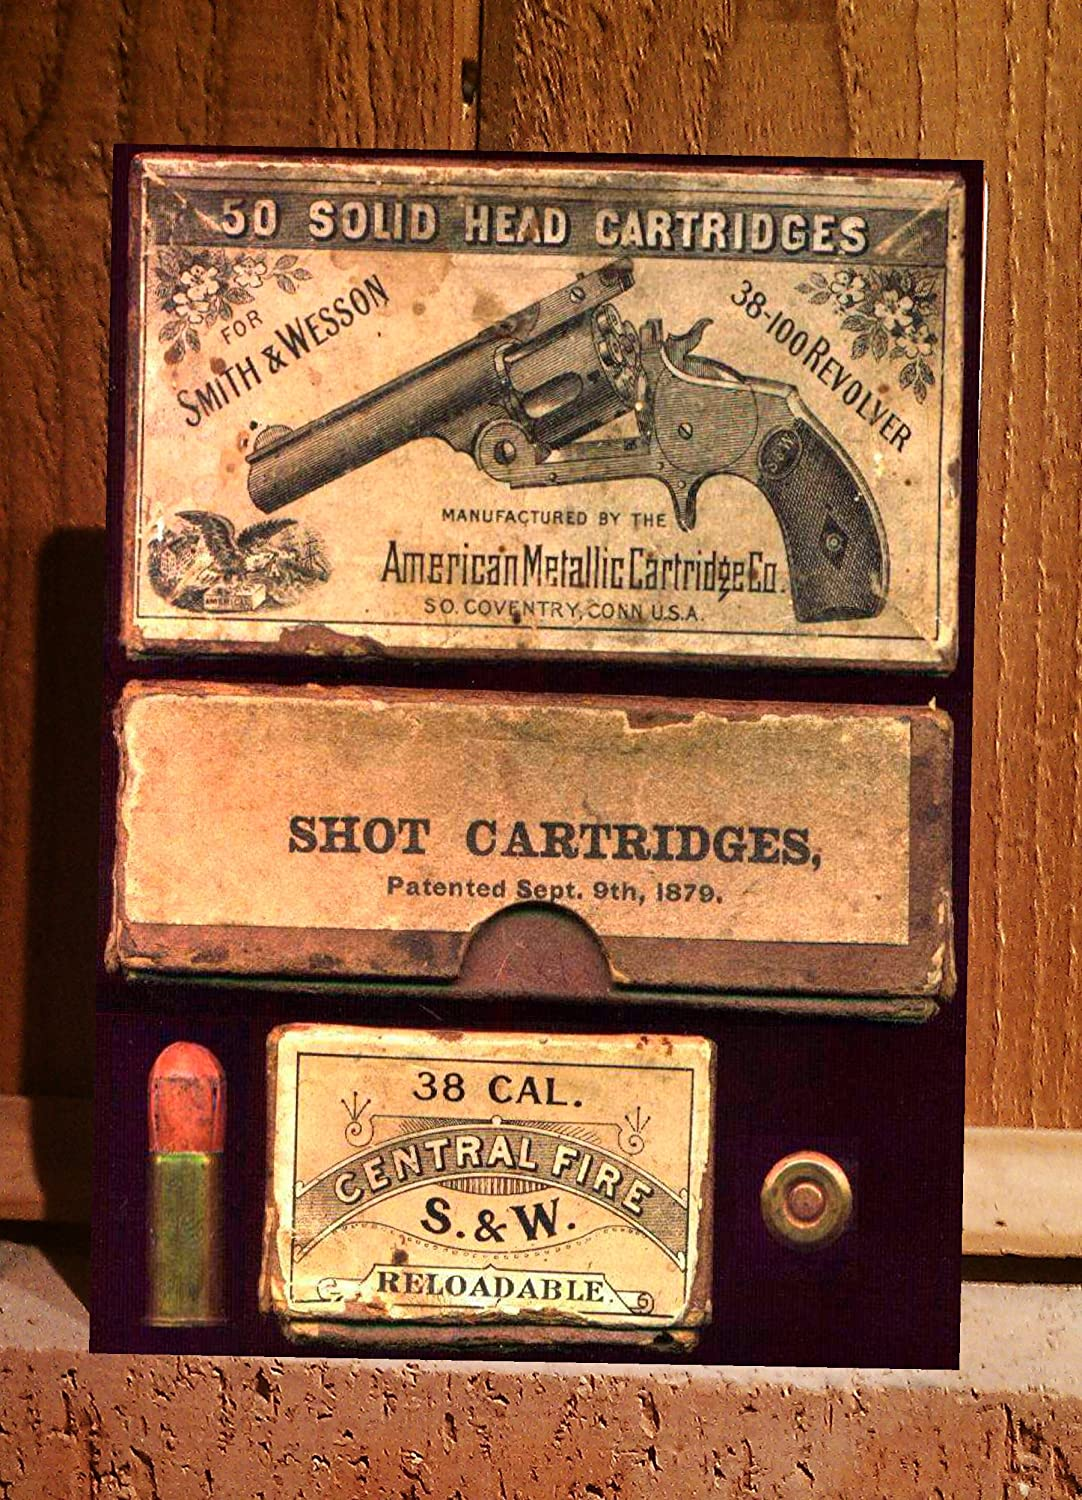 Amazon.com: Reproduction of Vintage Ammo Box for Smith & Wesson 38 ...